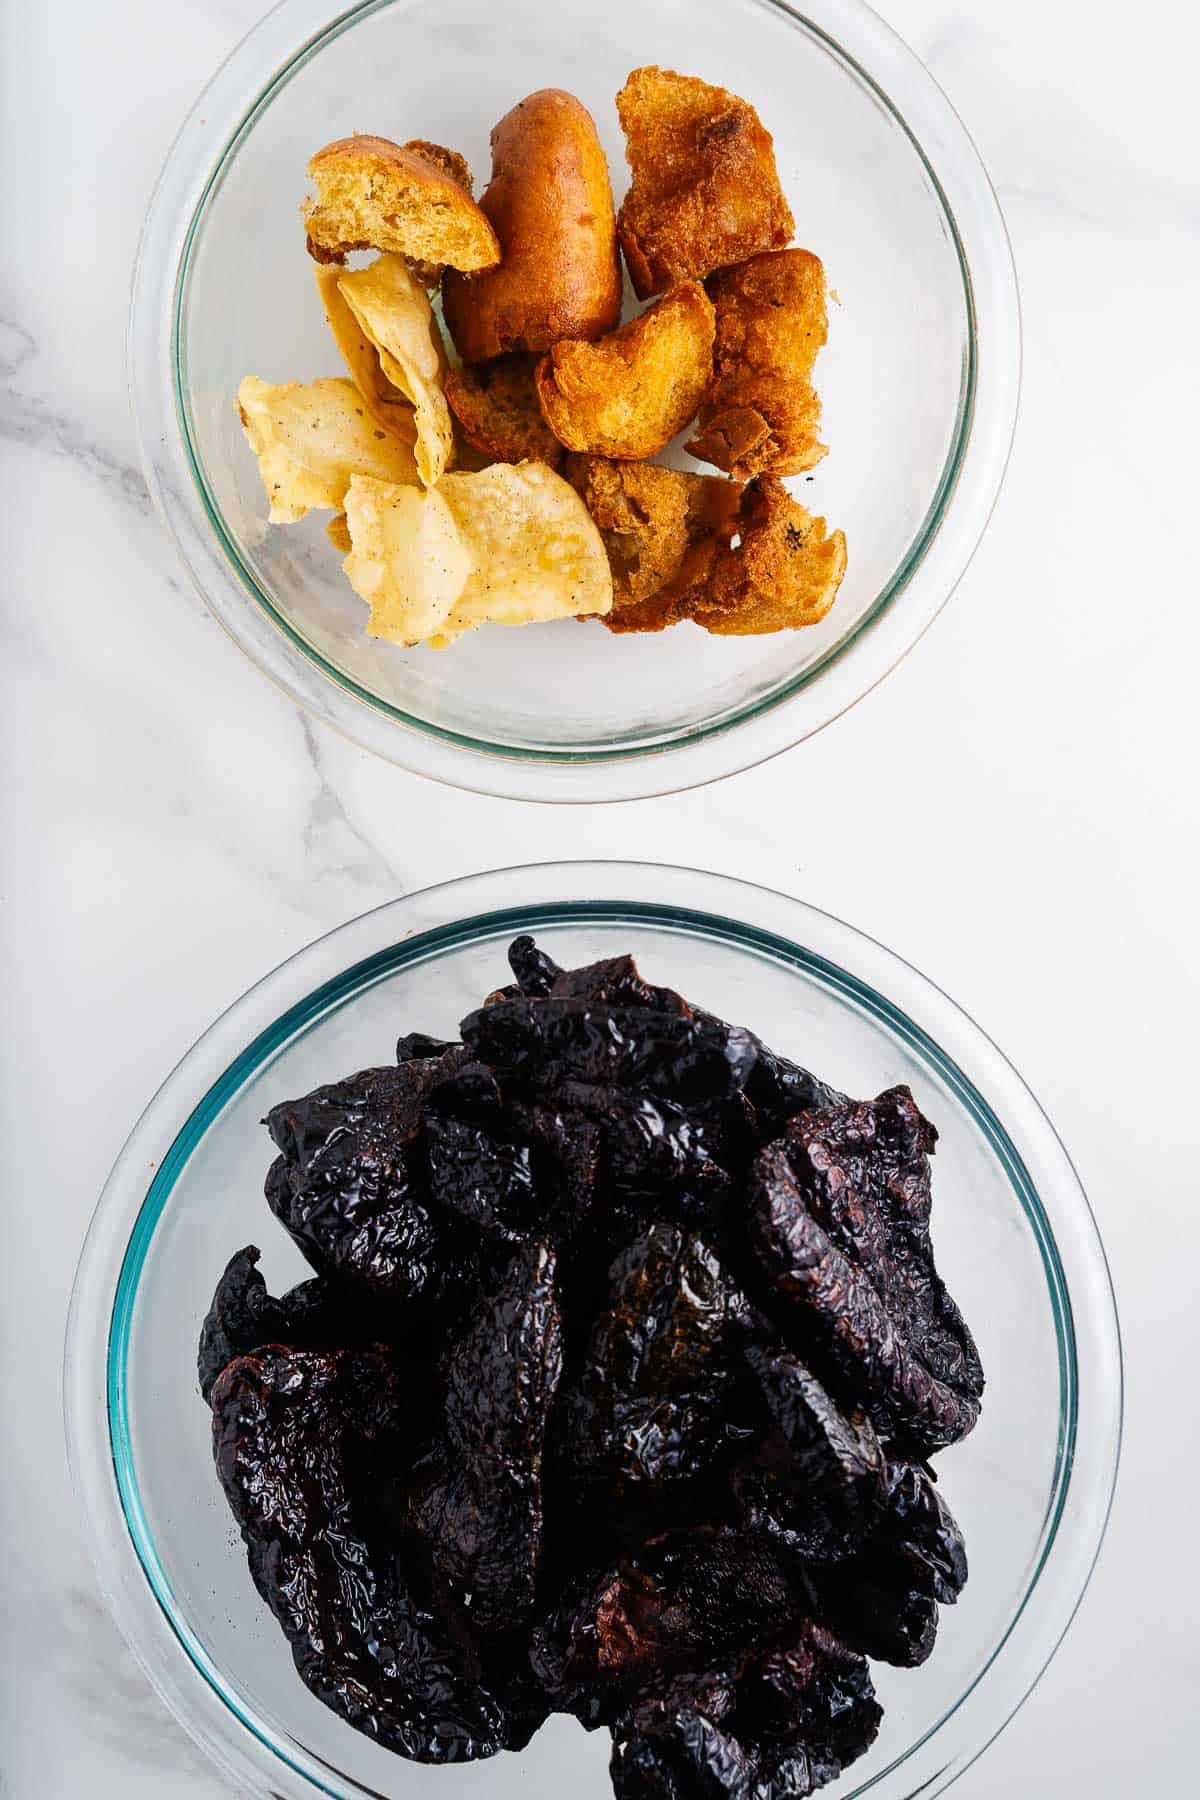 Fried Chiles, Corn Tortillas, and Bread